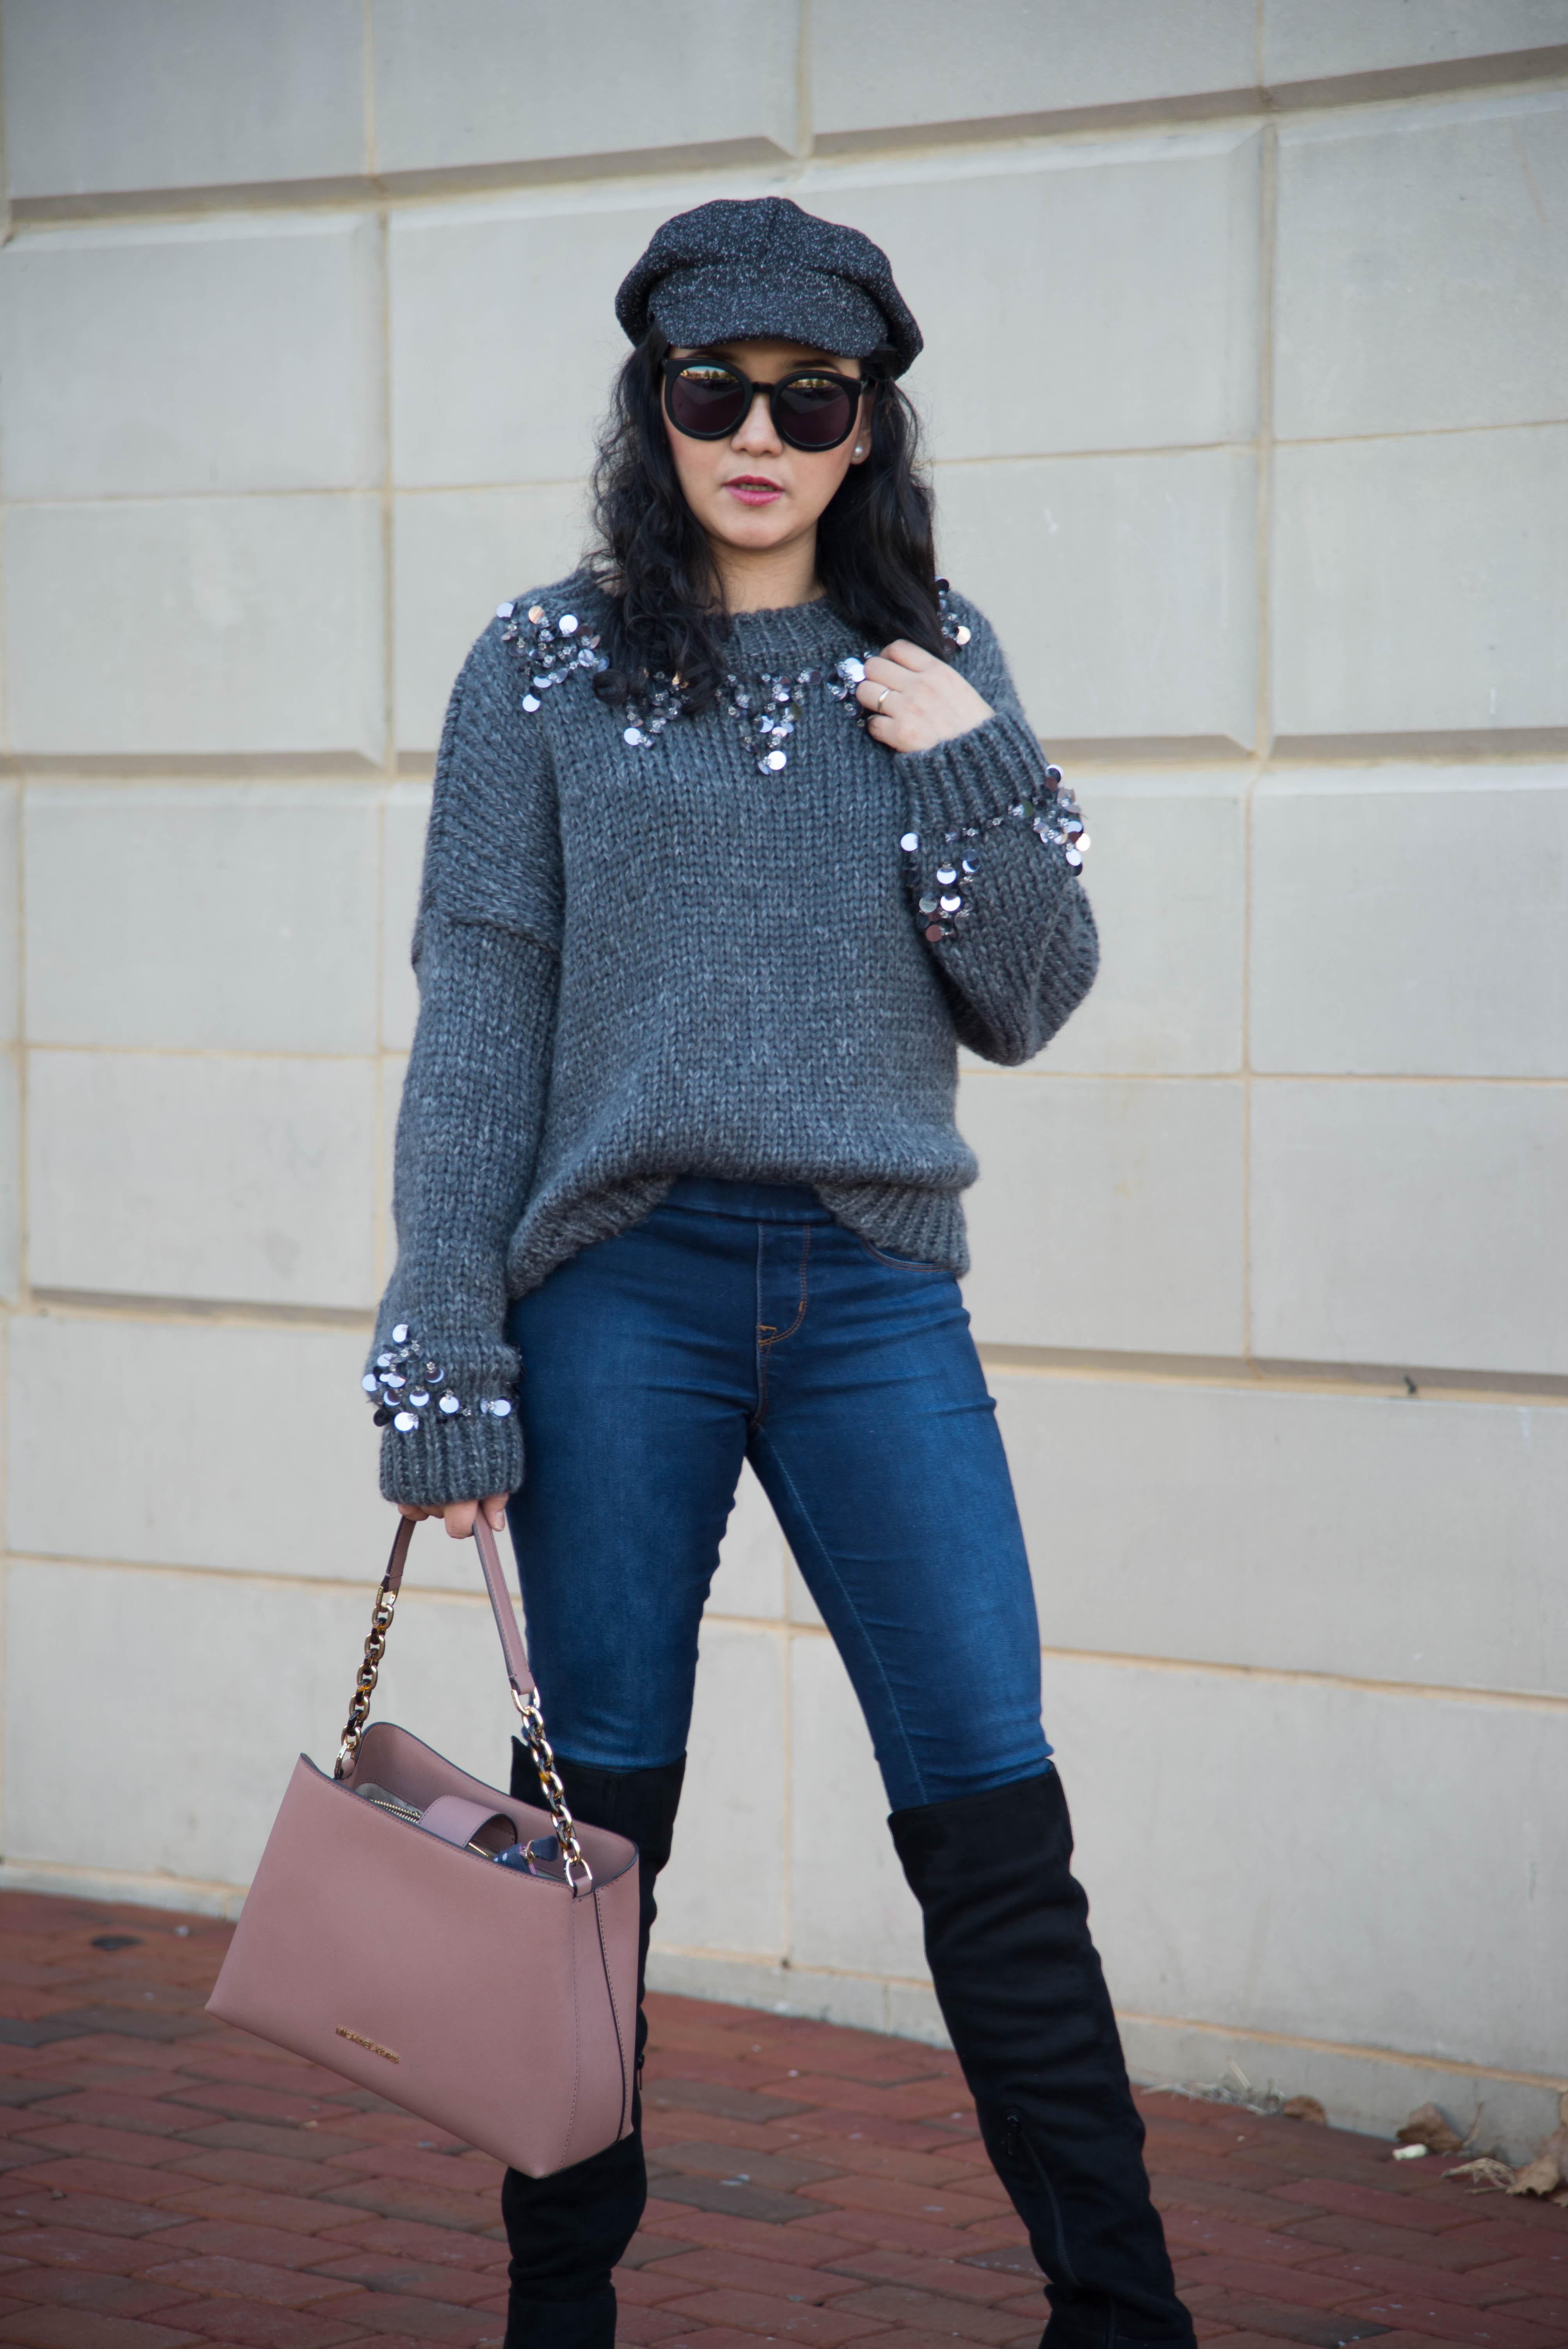 I Sparkle with my Sweater on Mondays